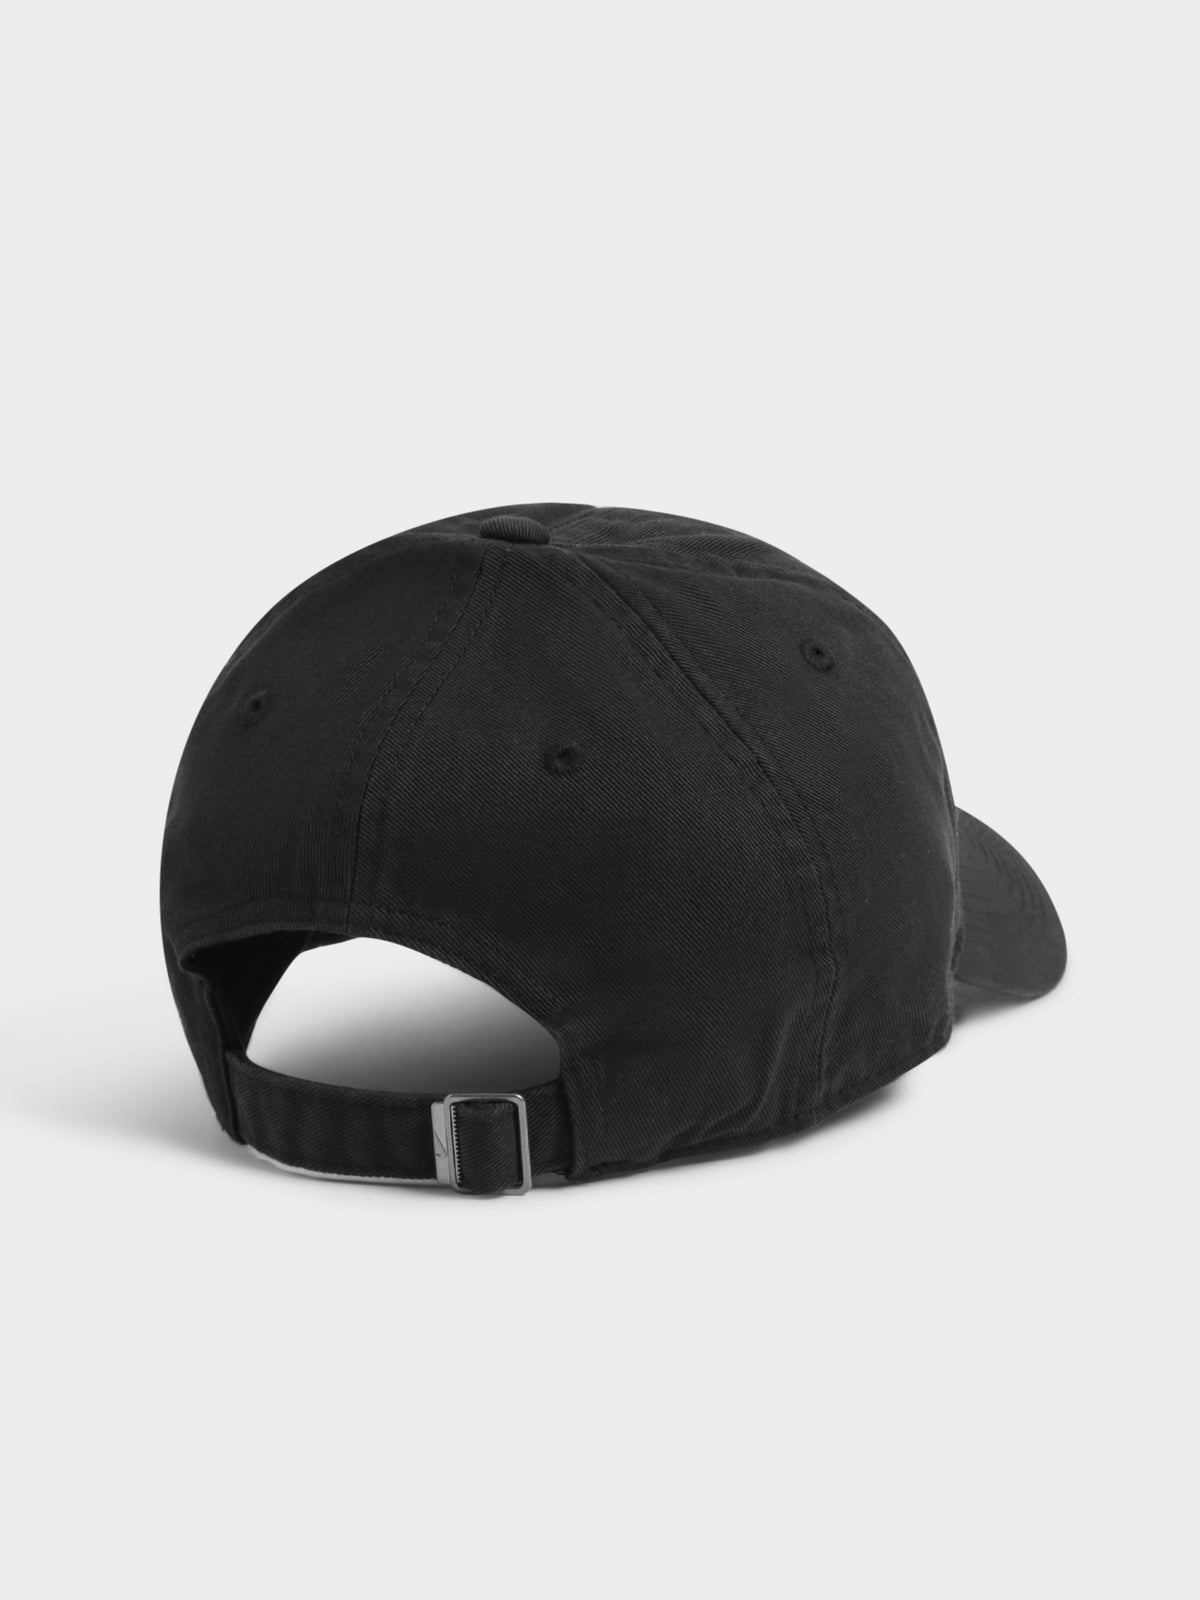 Unisex NSW H86 Futura Cap in Washed Black